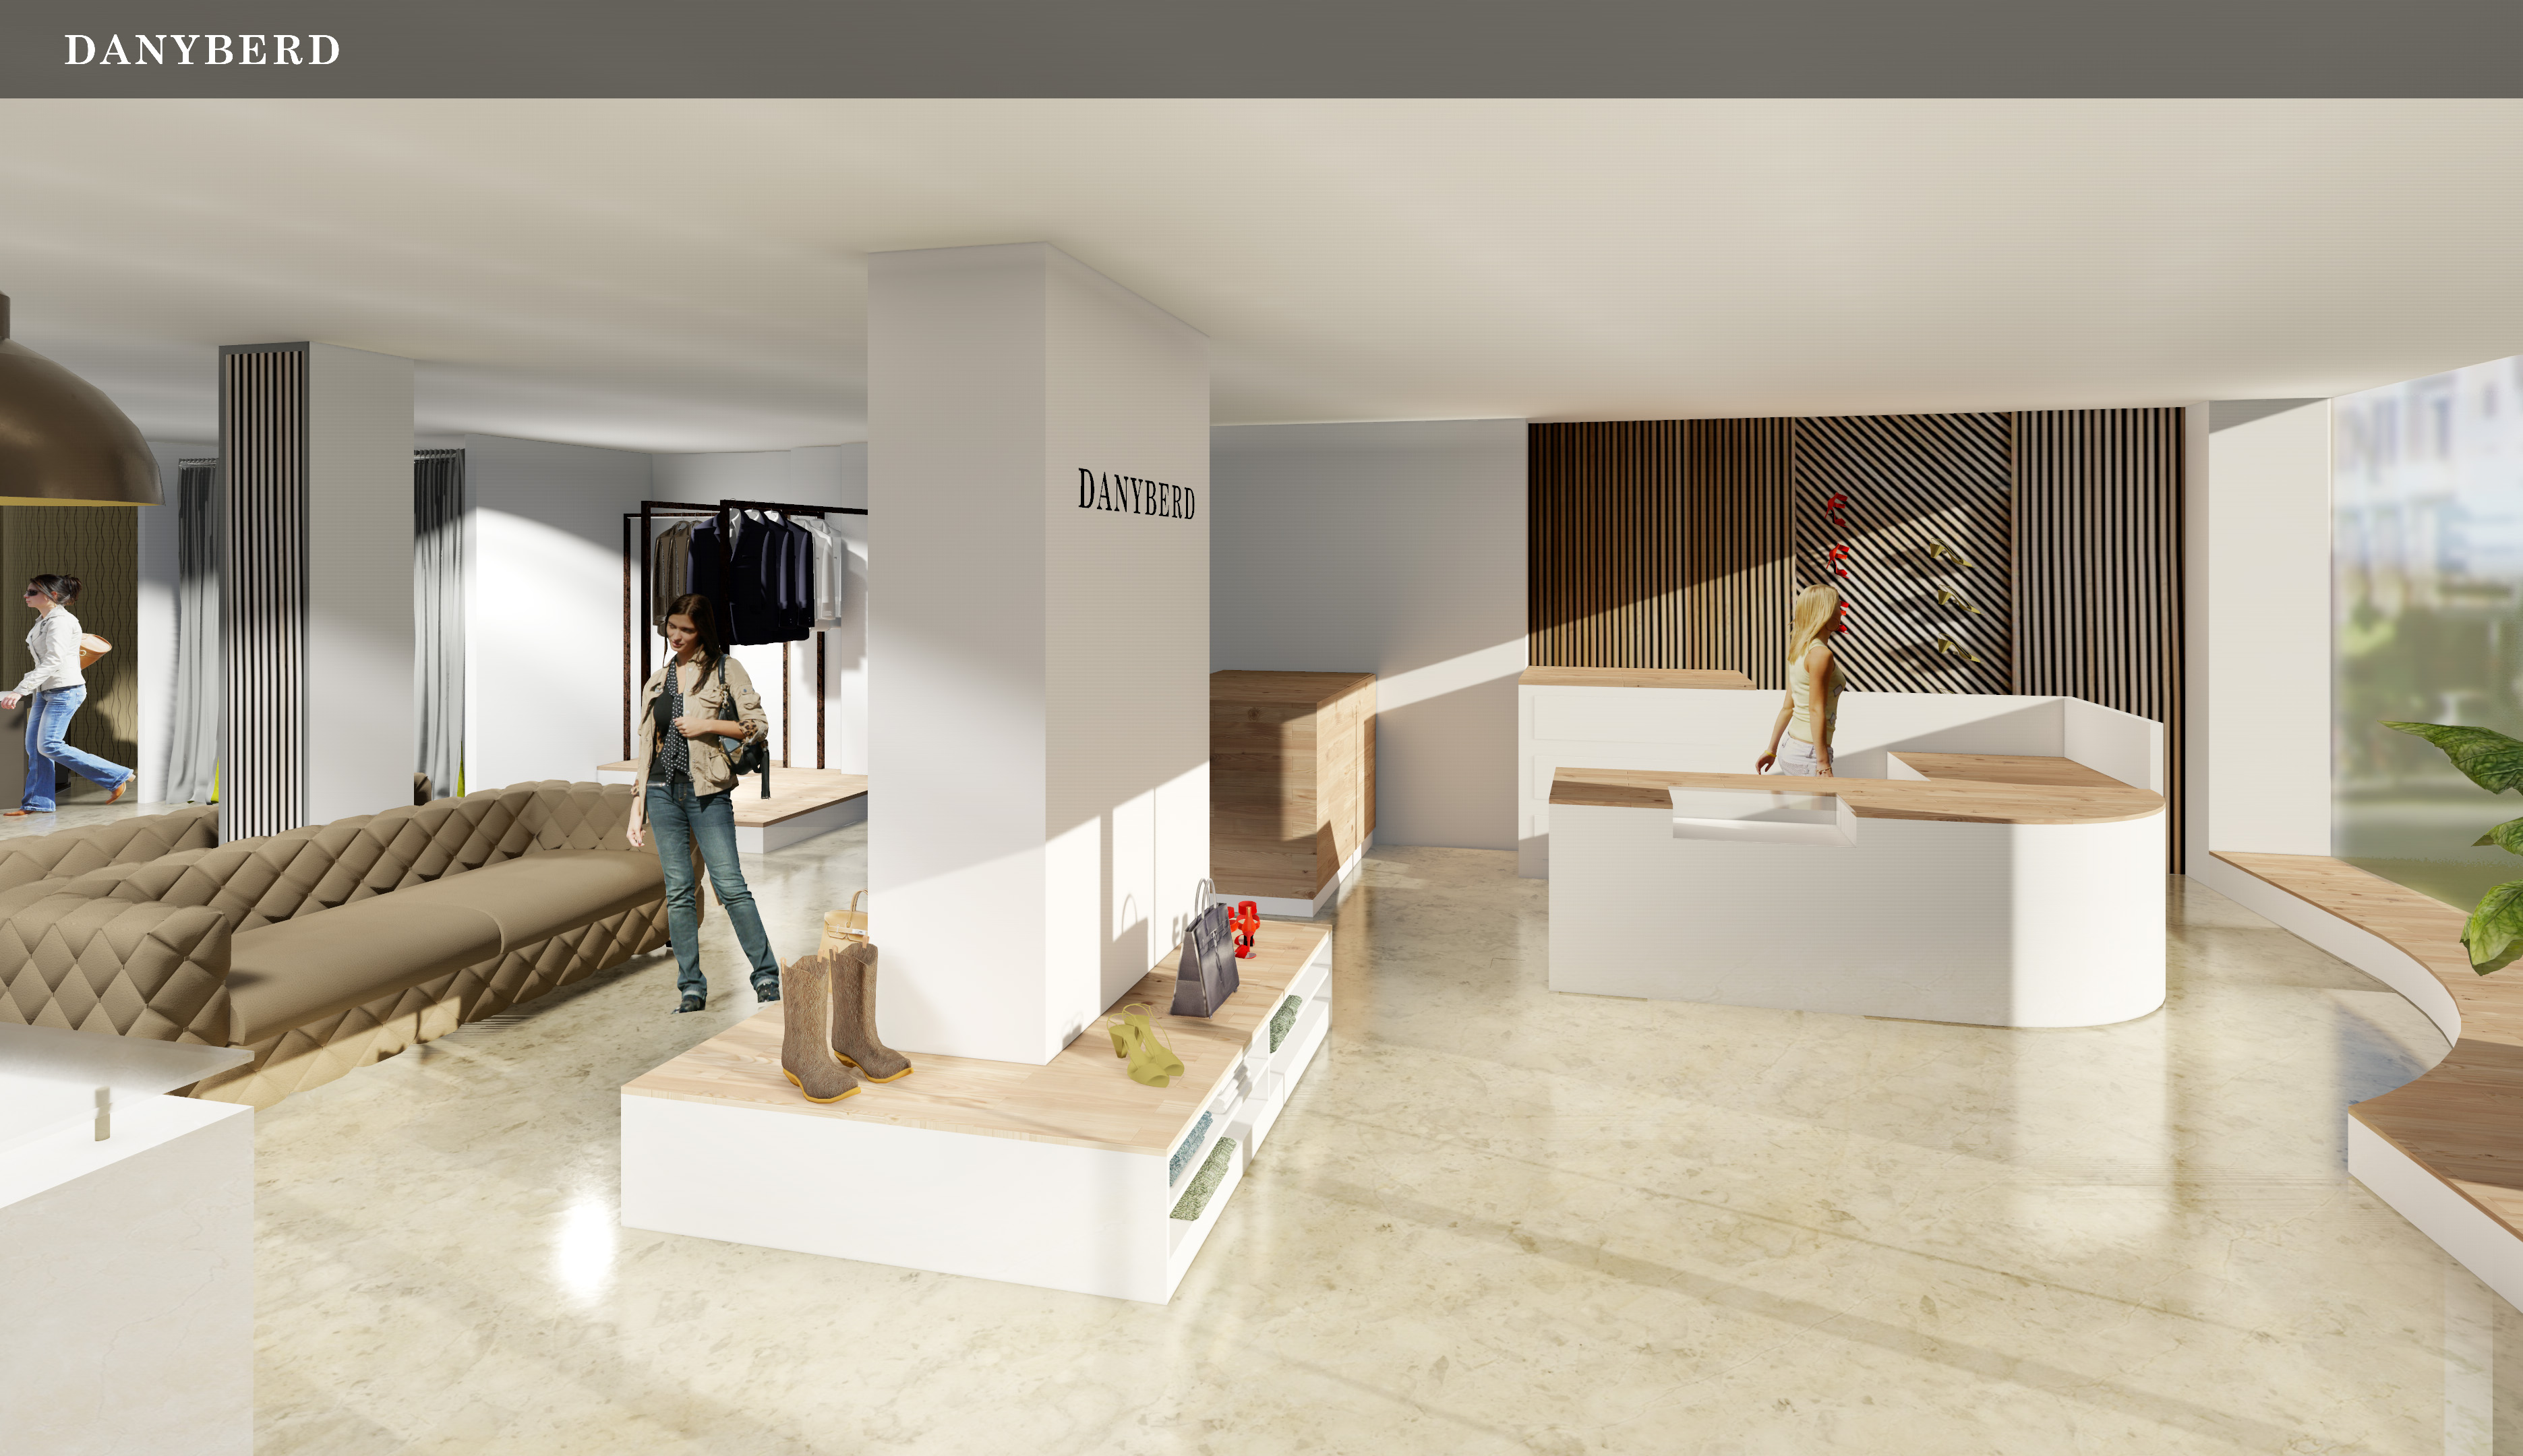 Am nagement categories 3d marseille for Amenagement 3d